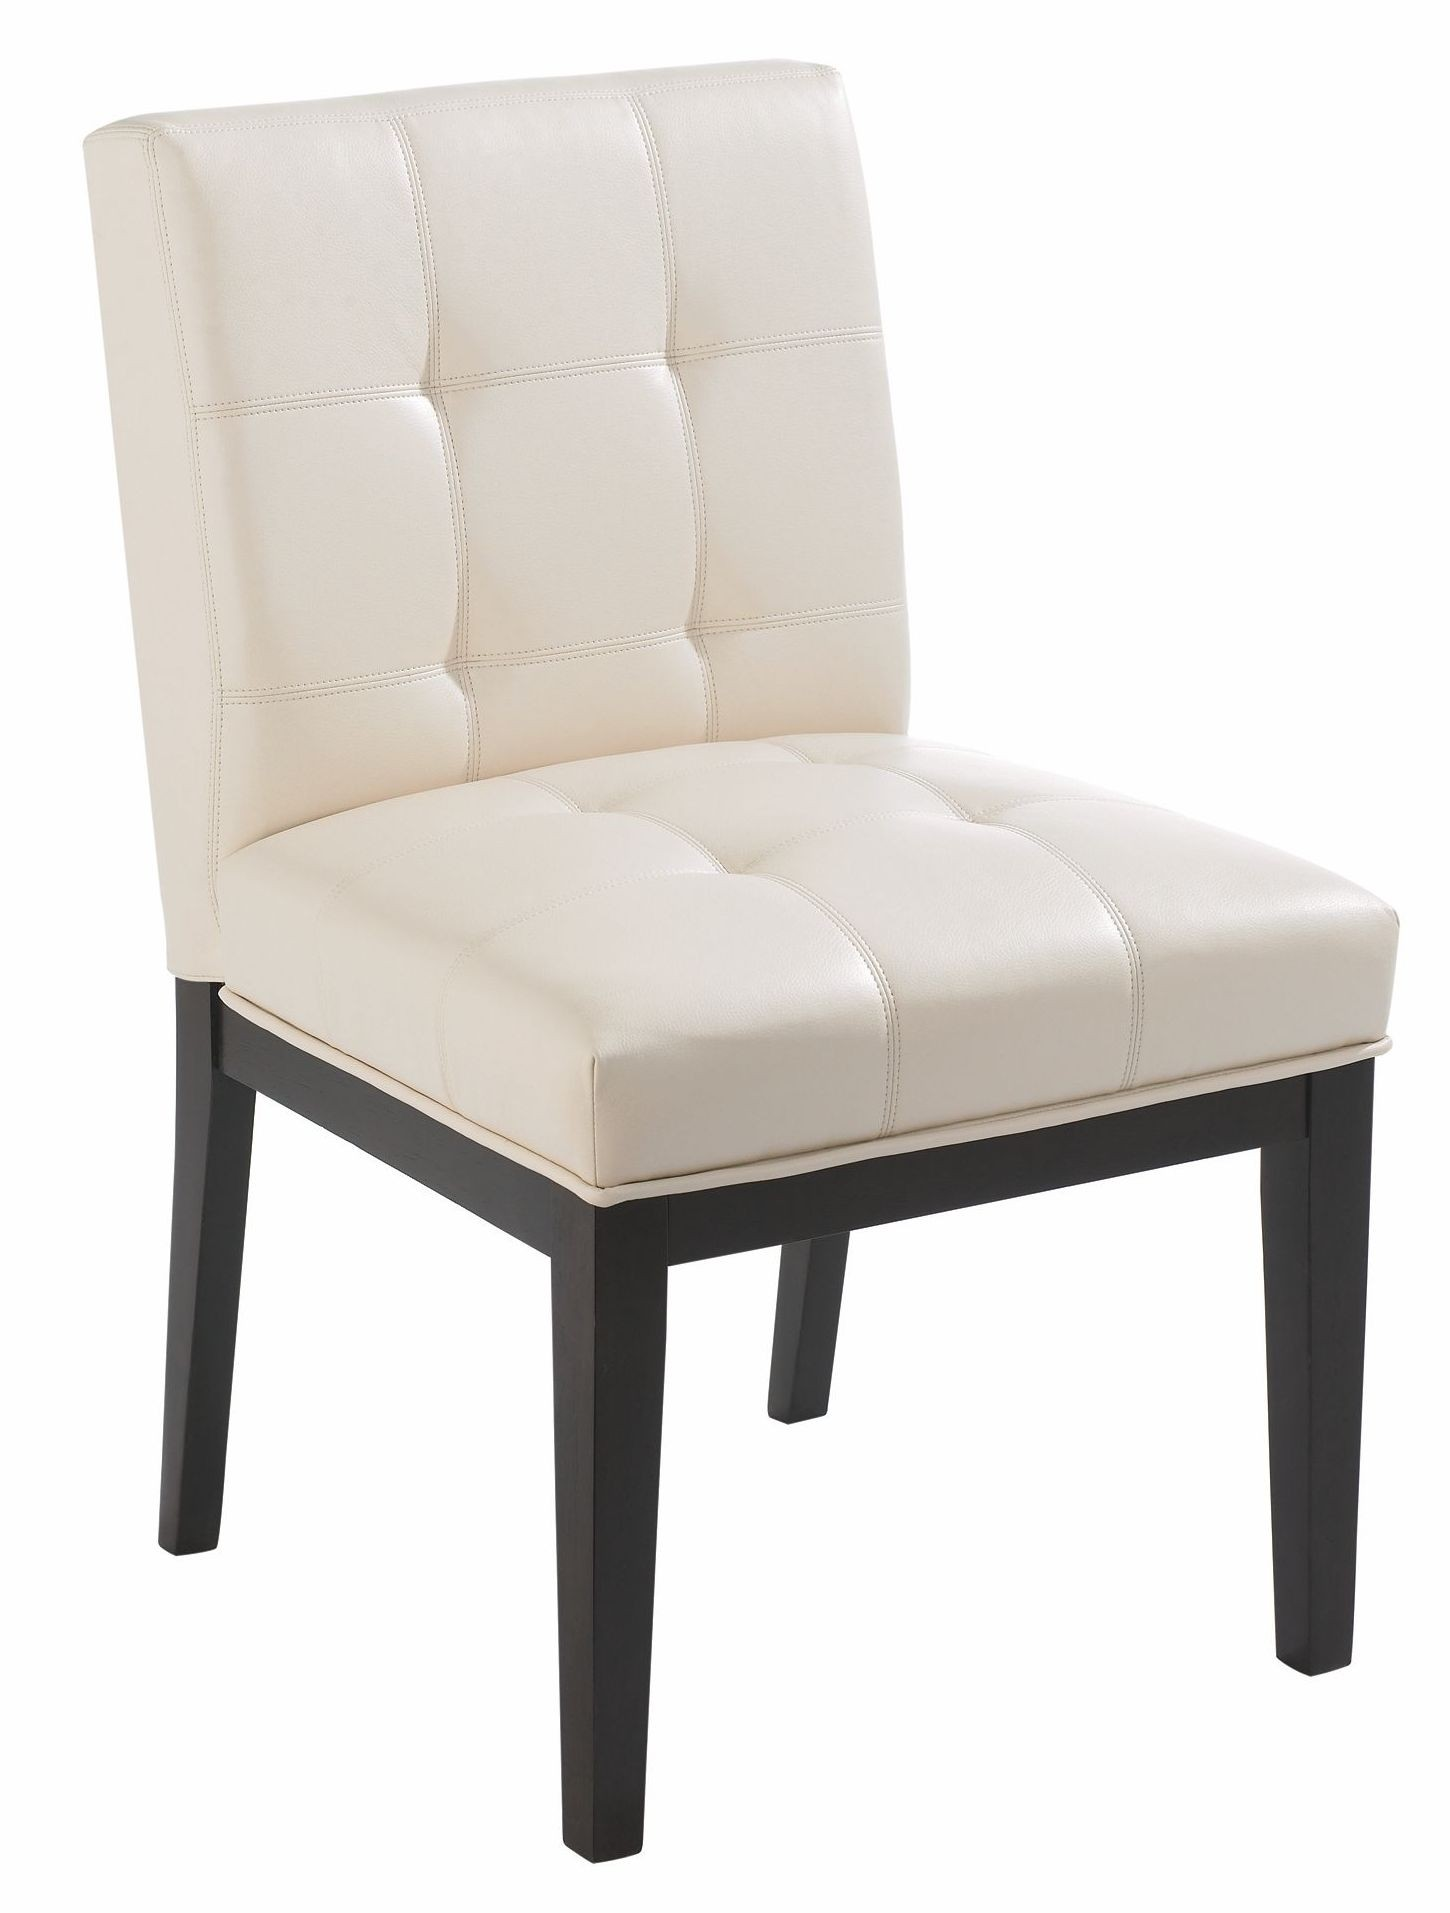 felicia cream faux leather dining chair set of 2 from sunpan 52313